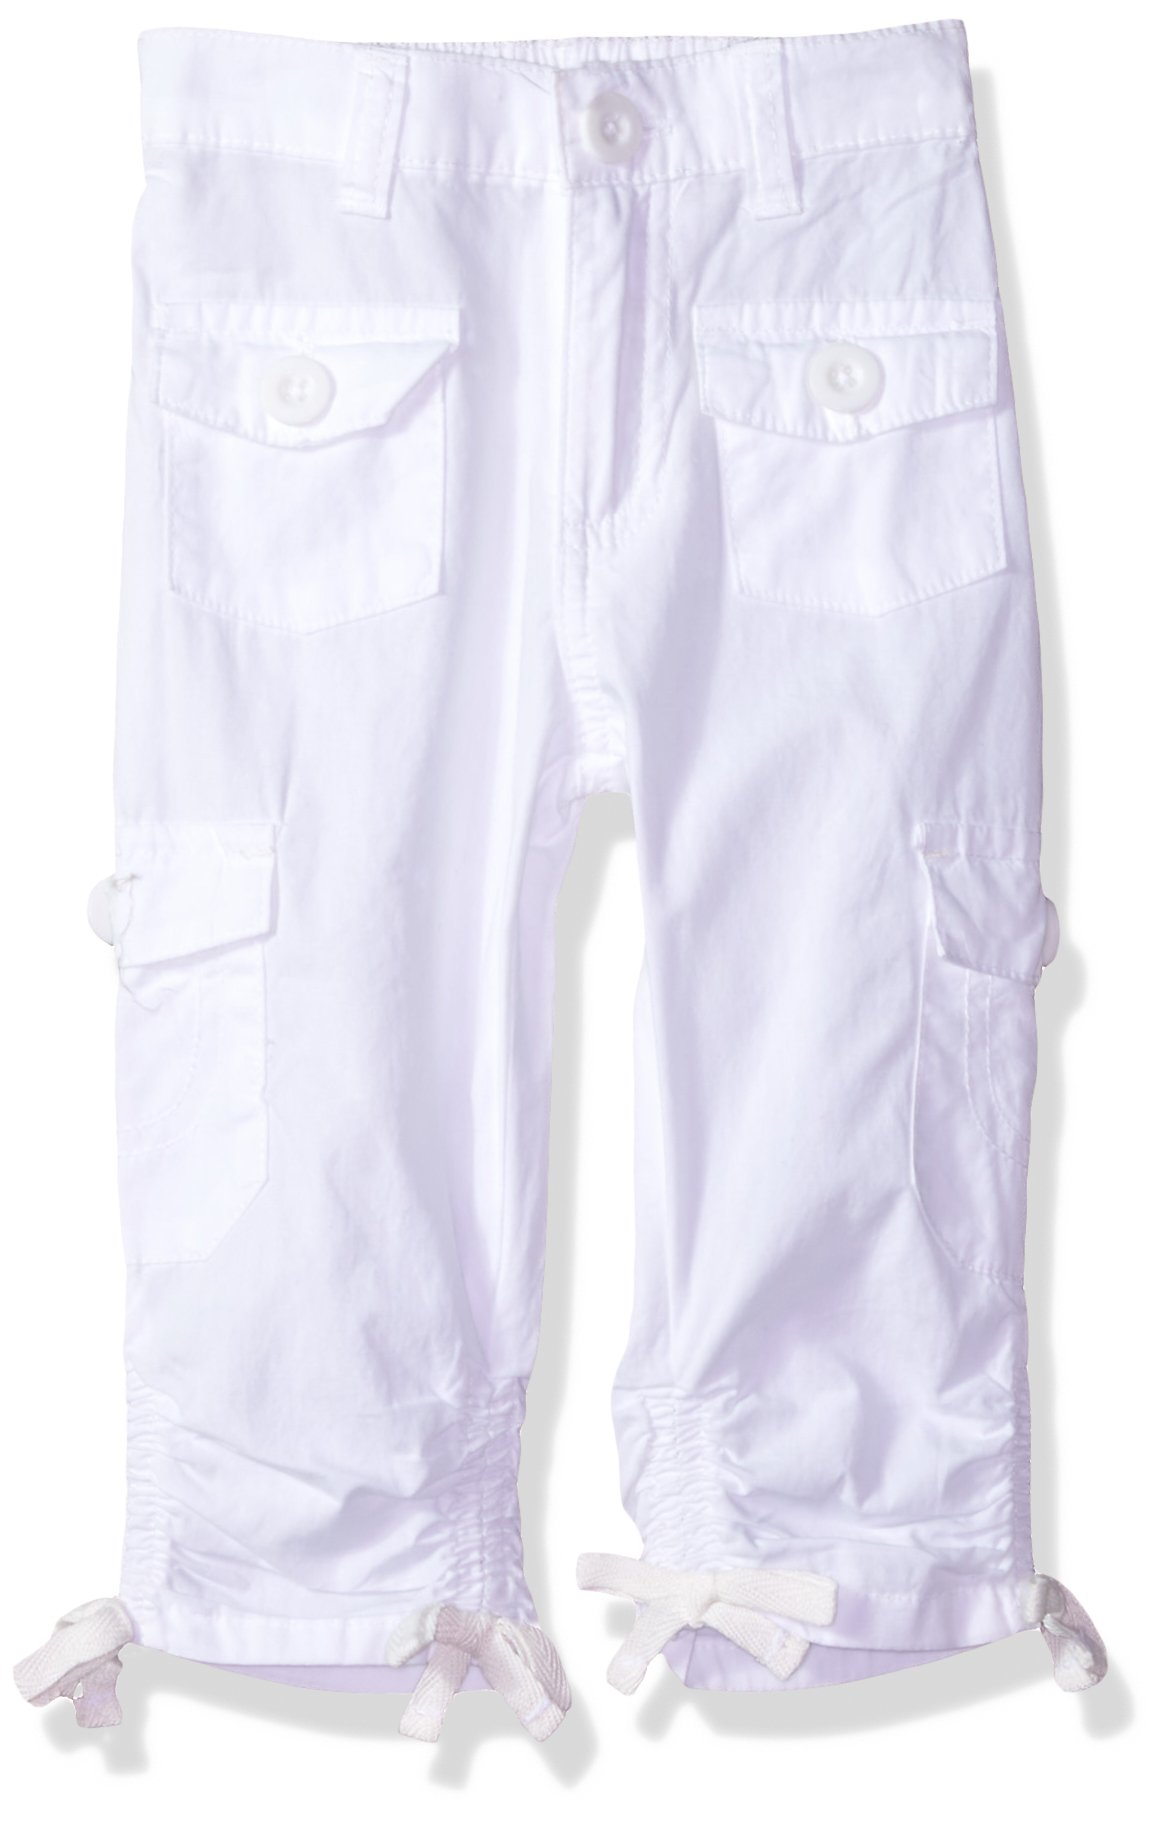 Limited Too Toddler Girls' Fleece Pant, Scrunchy Hem Poplin Cargo Capri White, 4T by Limited Too